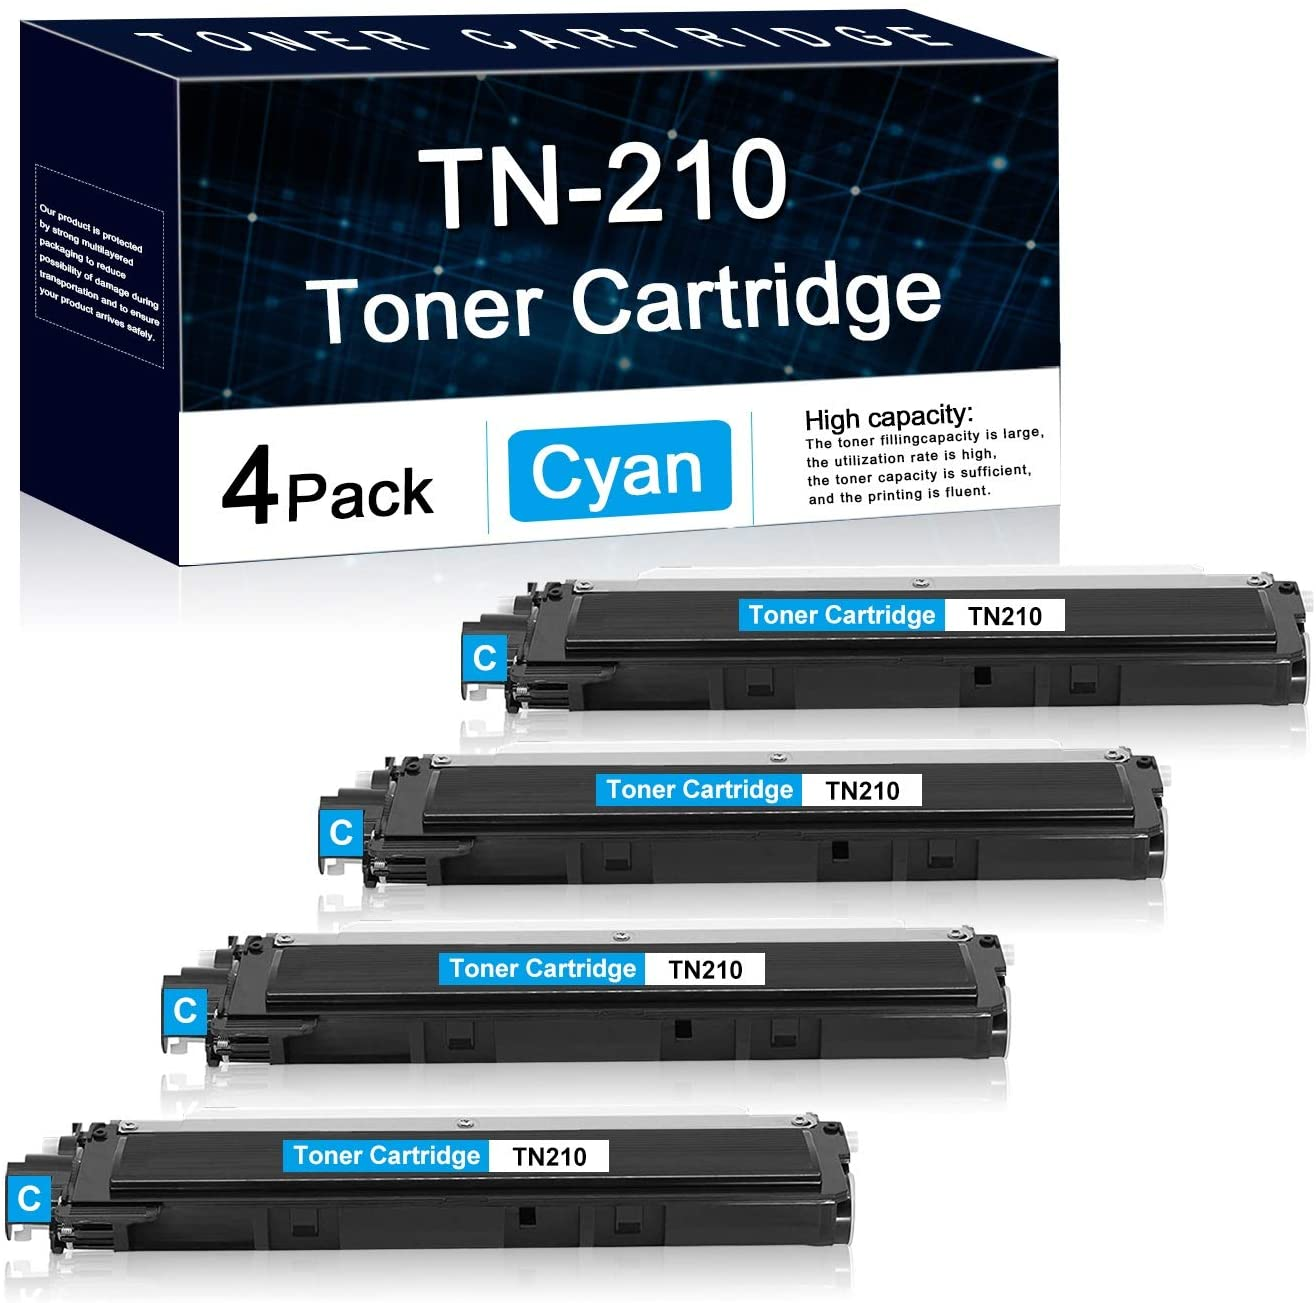 4 Pack Cyan TN210 Compatible Toner Cartridge Replacement for Brother HL-3040CN 3045CN 3070CW 3075CW MFC-9010CN 9120CN 9125CN 9320CN/CW 9325CW DCP-9010CN HL-8070 HL-8370 Printers Toner